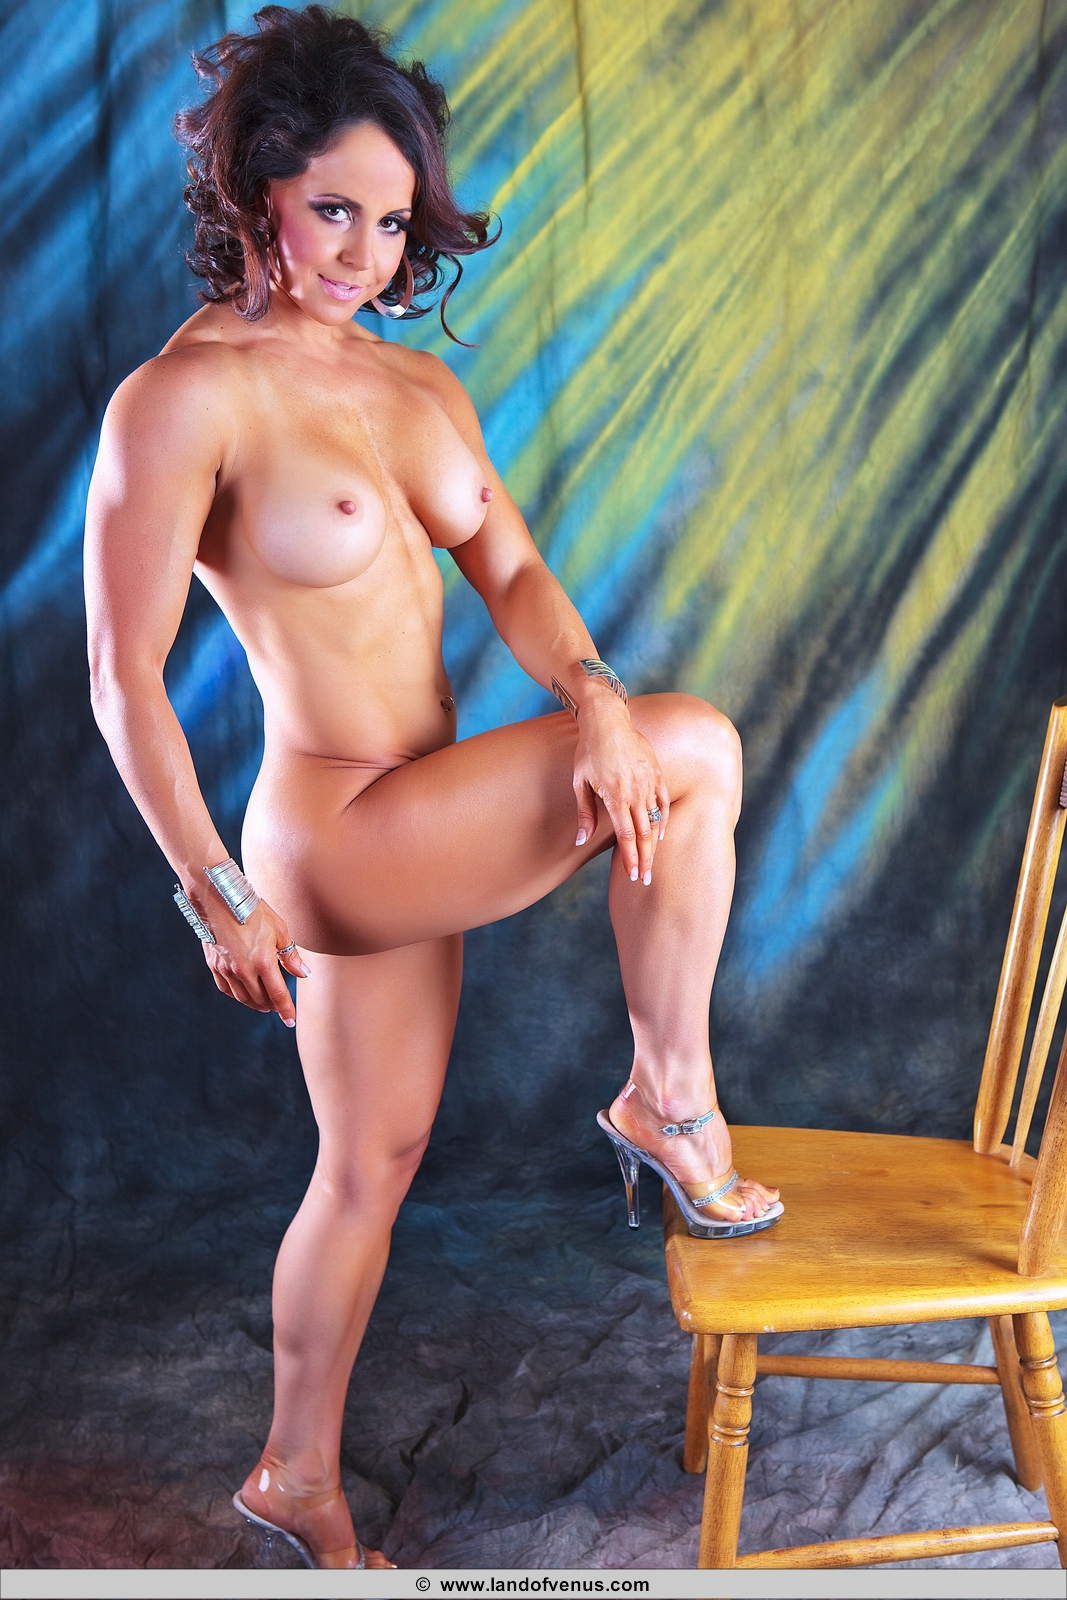 Interesting. Personal trainer nude